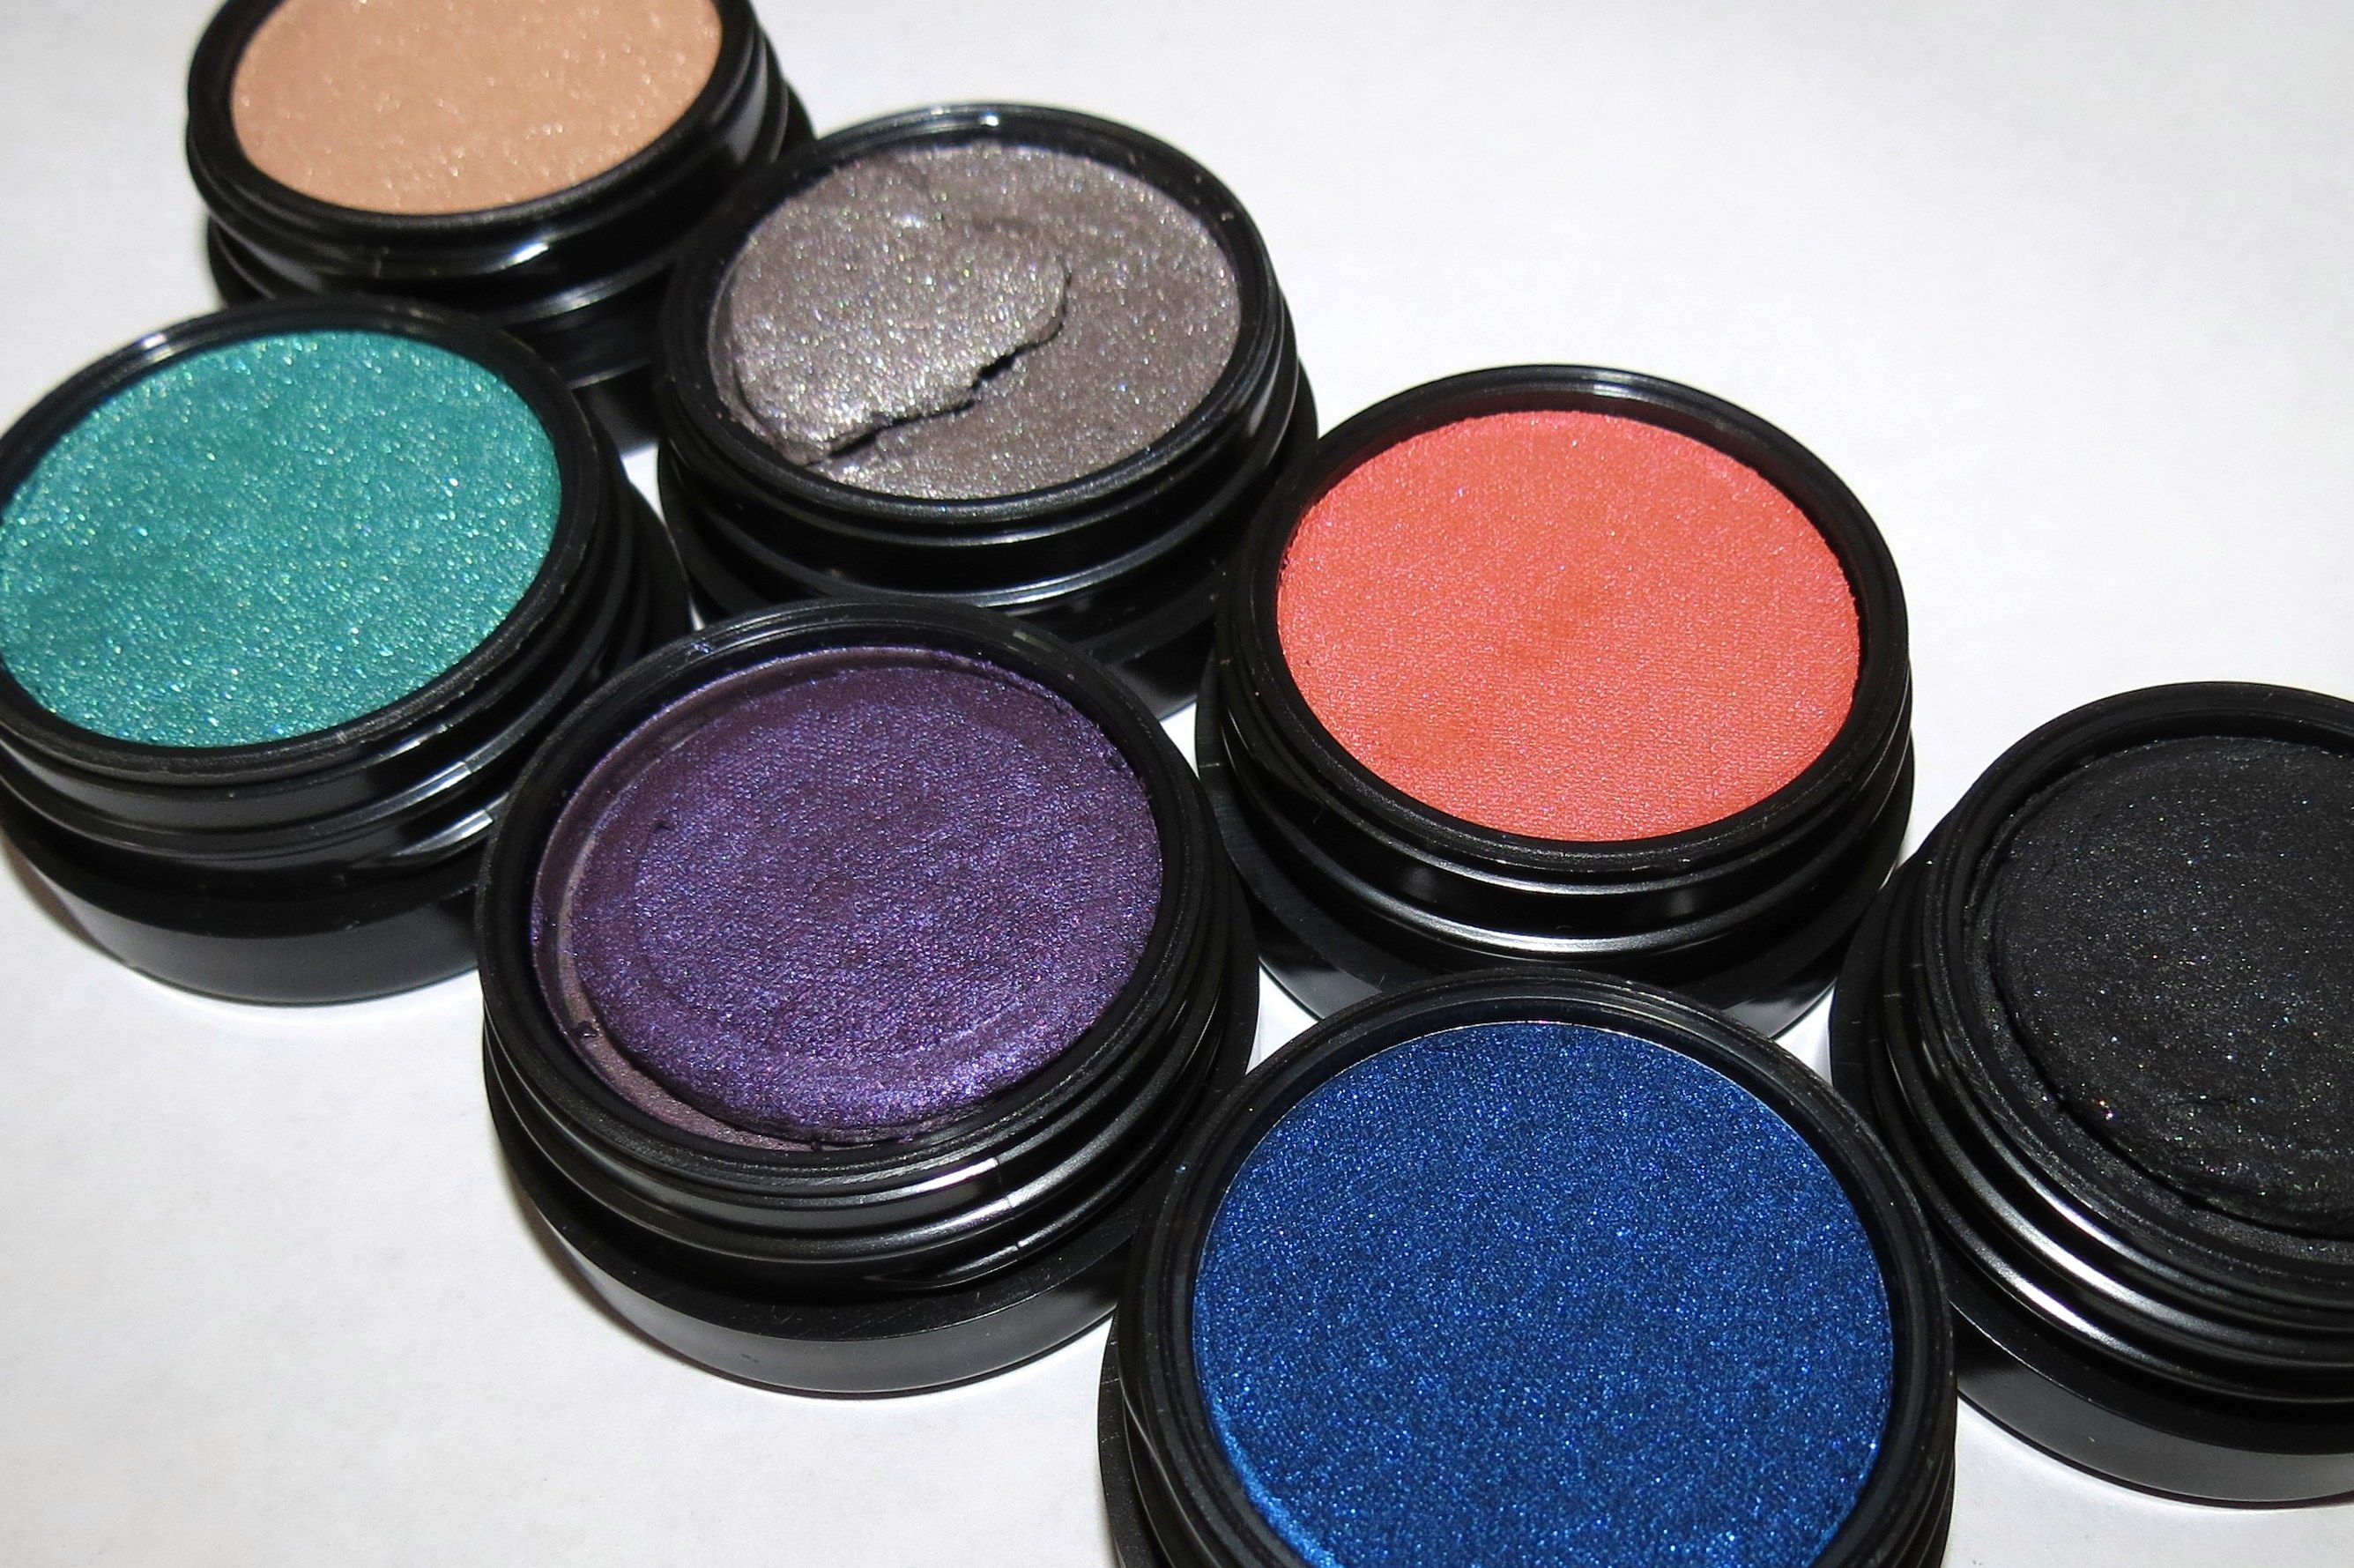 MAC Electric Cool Eye Shadows - Click through for swatches, eye looks and review!!